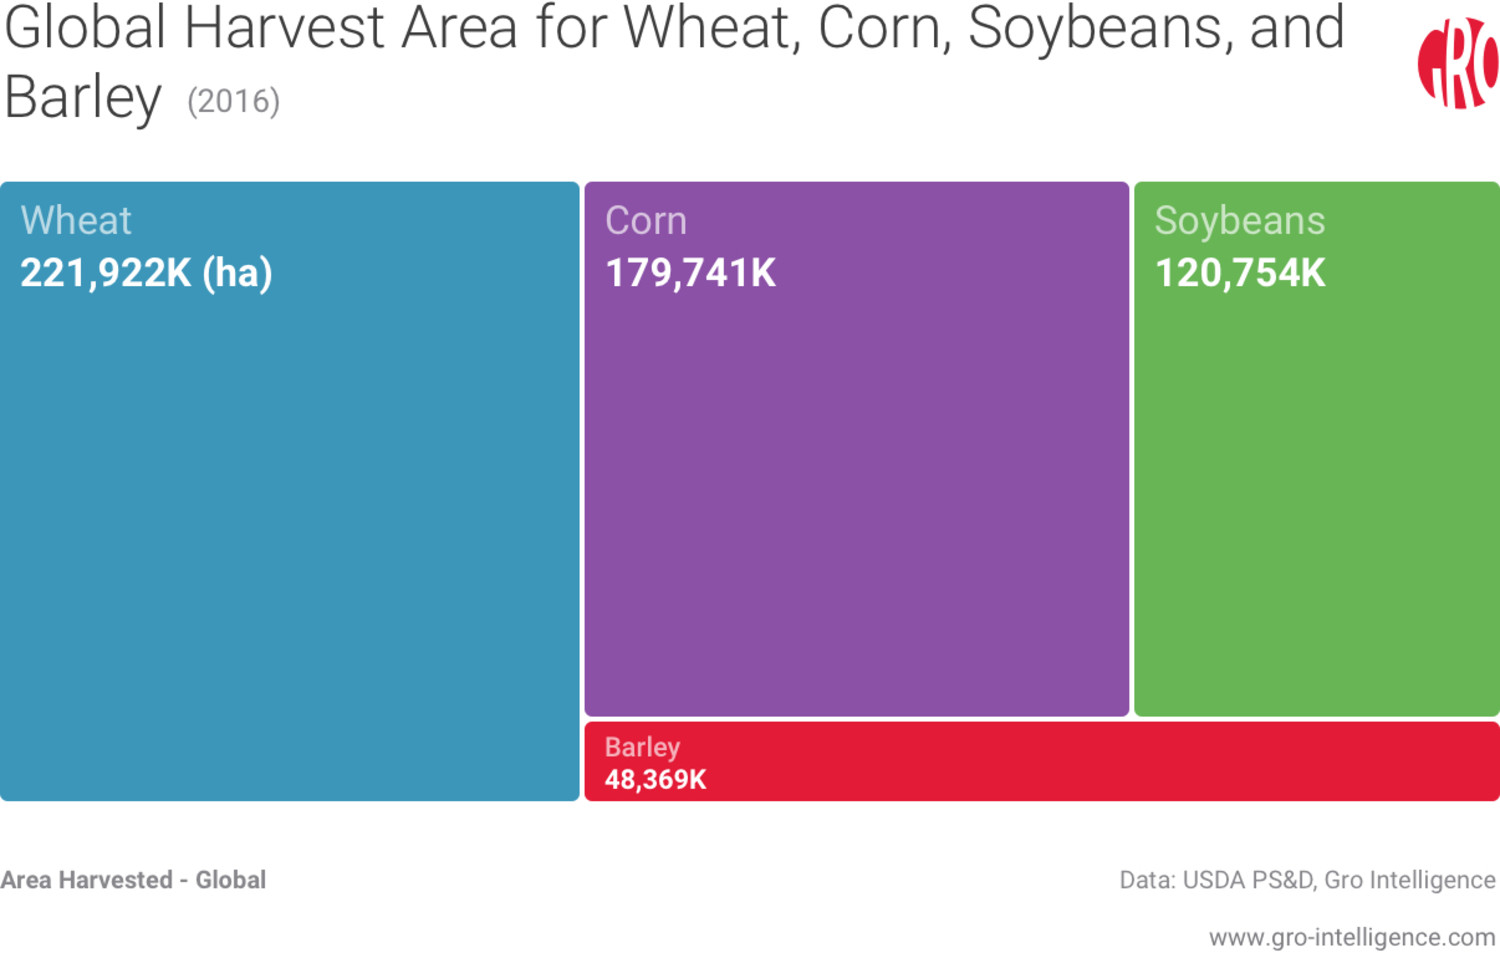 Global Harvest Area for Wheat, Corn, Soybeans, and Barley